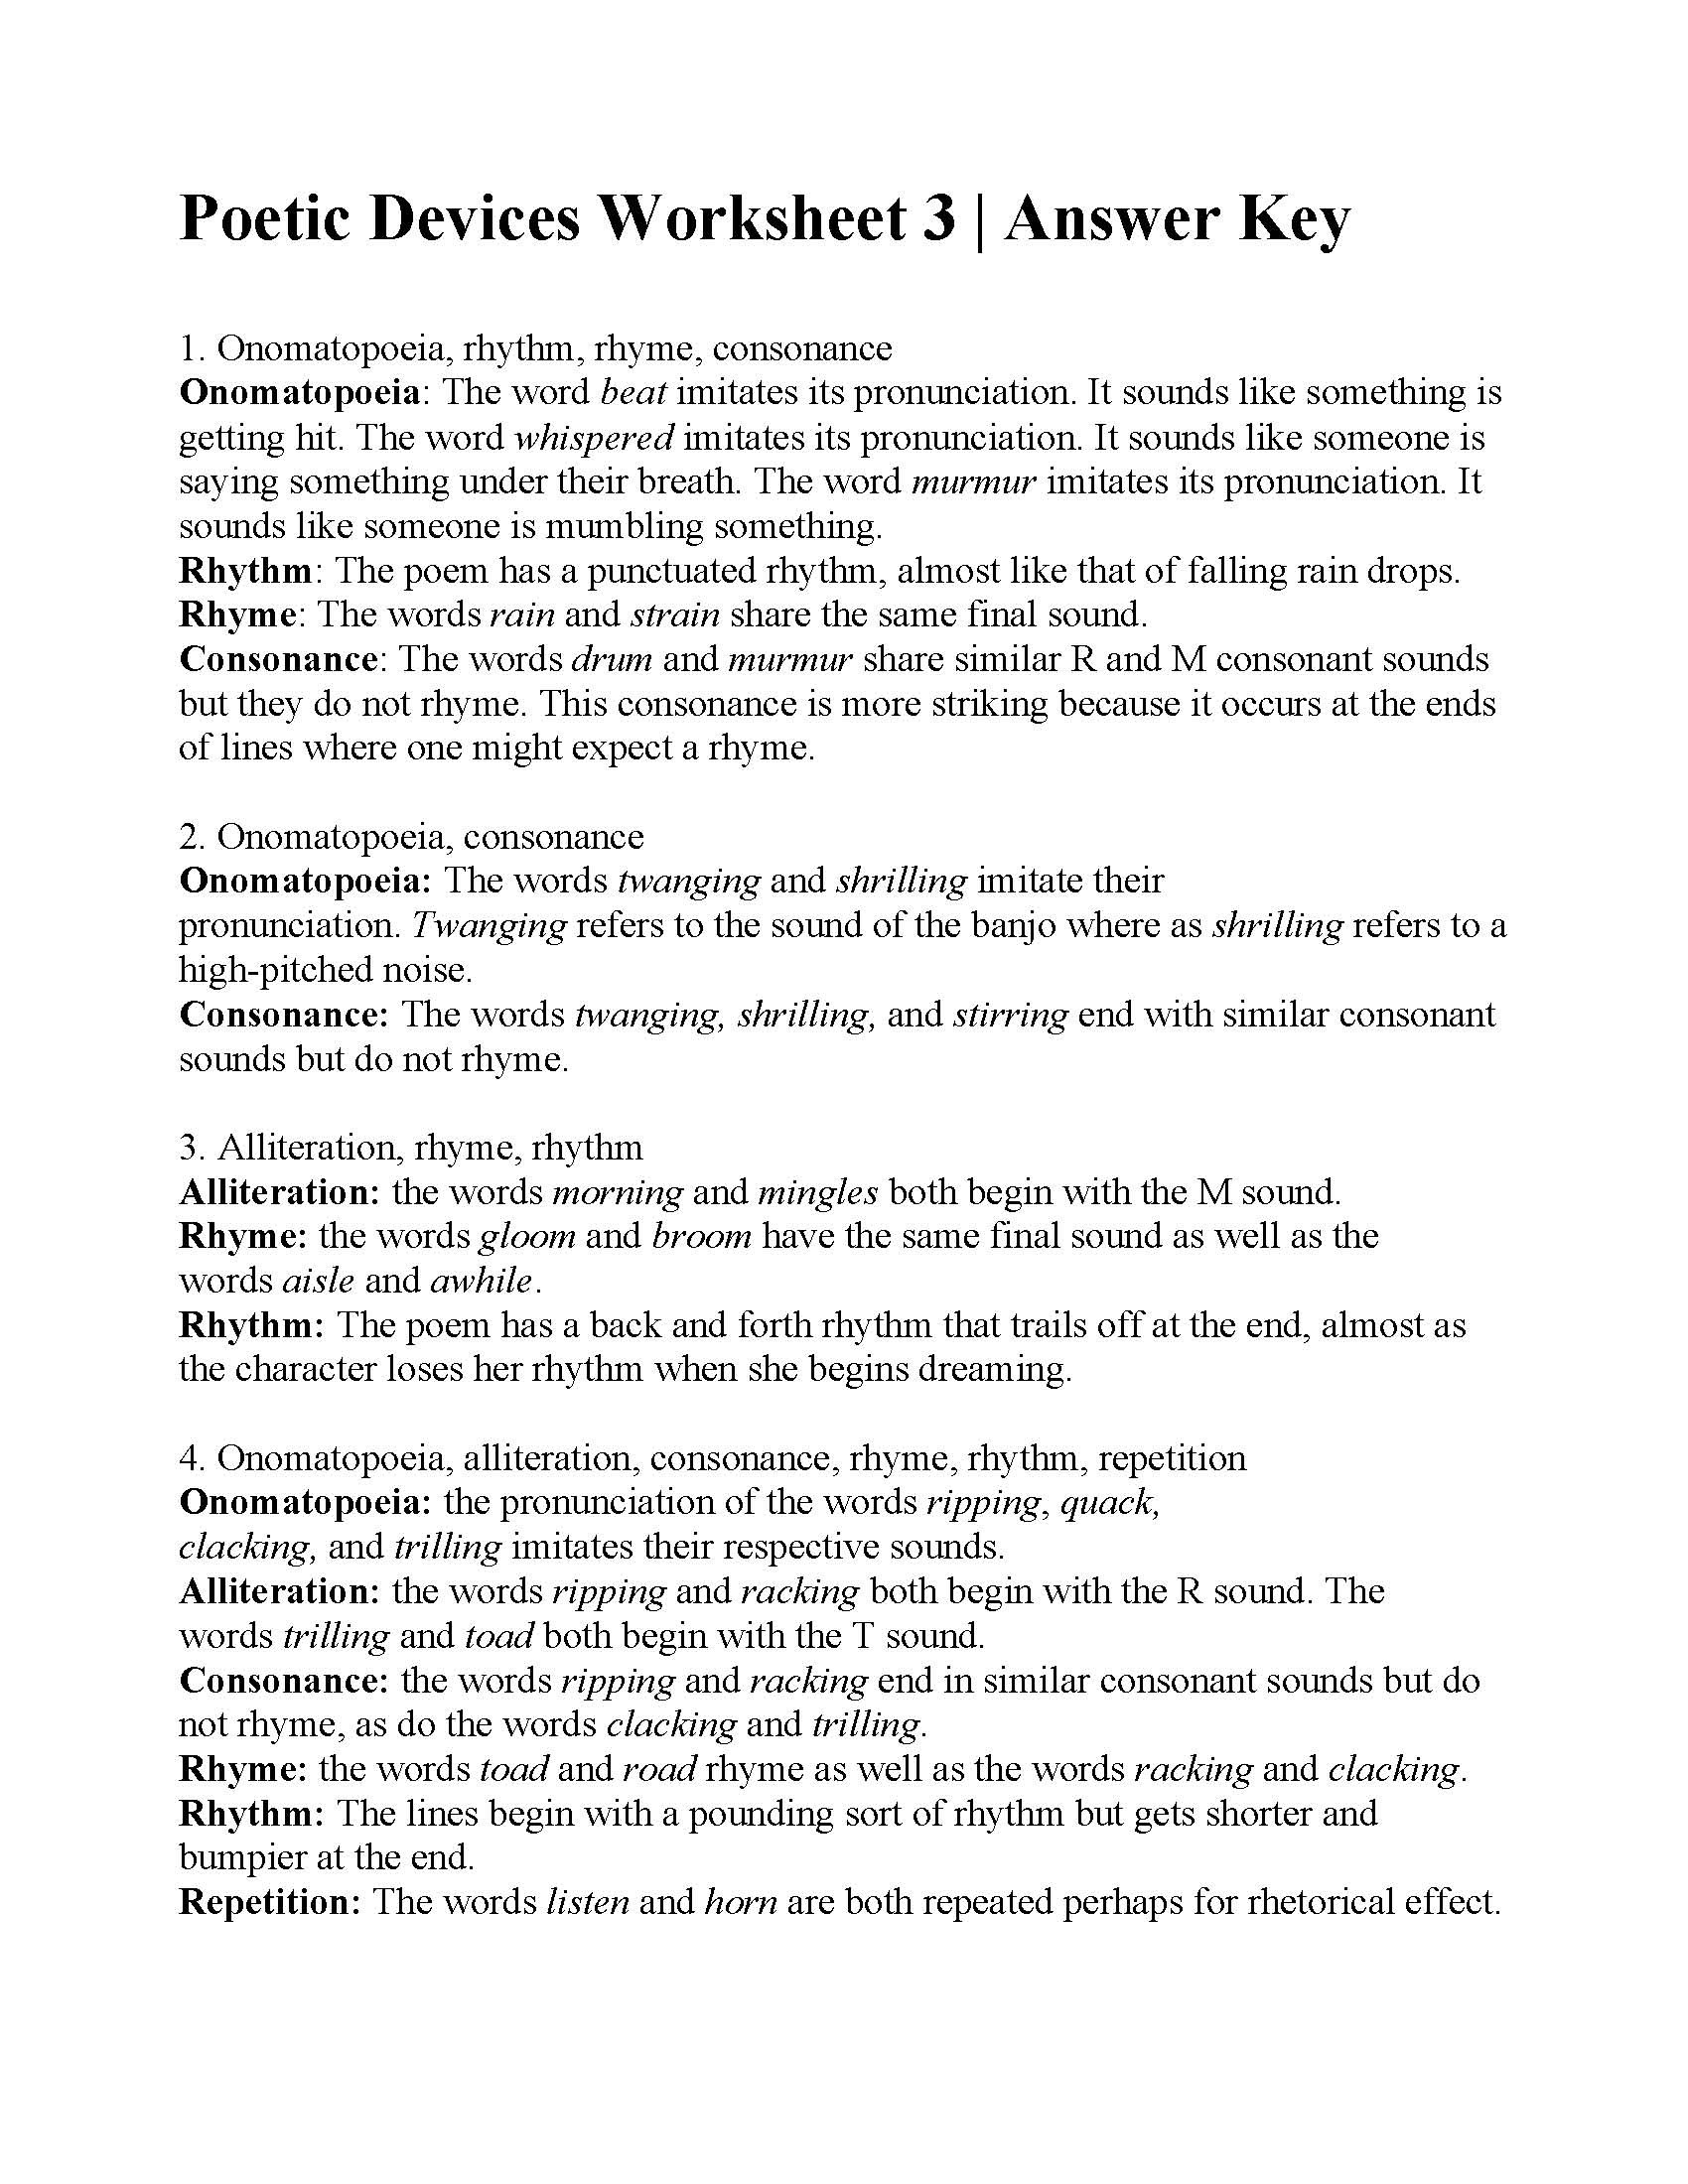 Sound Devices In Poetry Worksheet Poetic Devices Worksheet 3